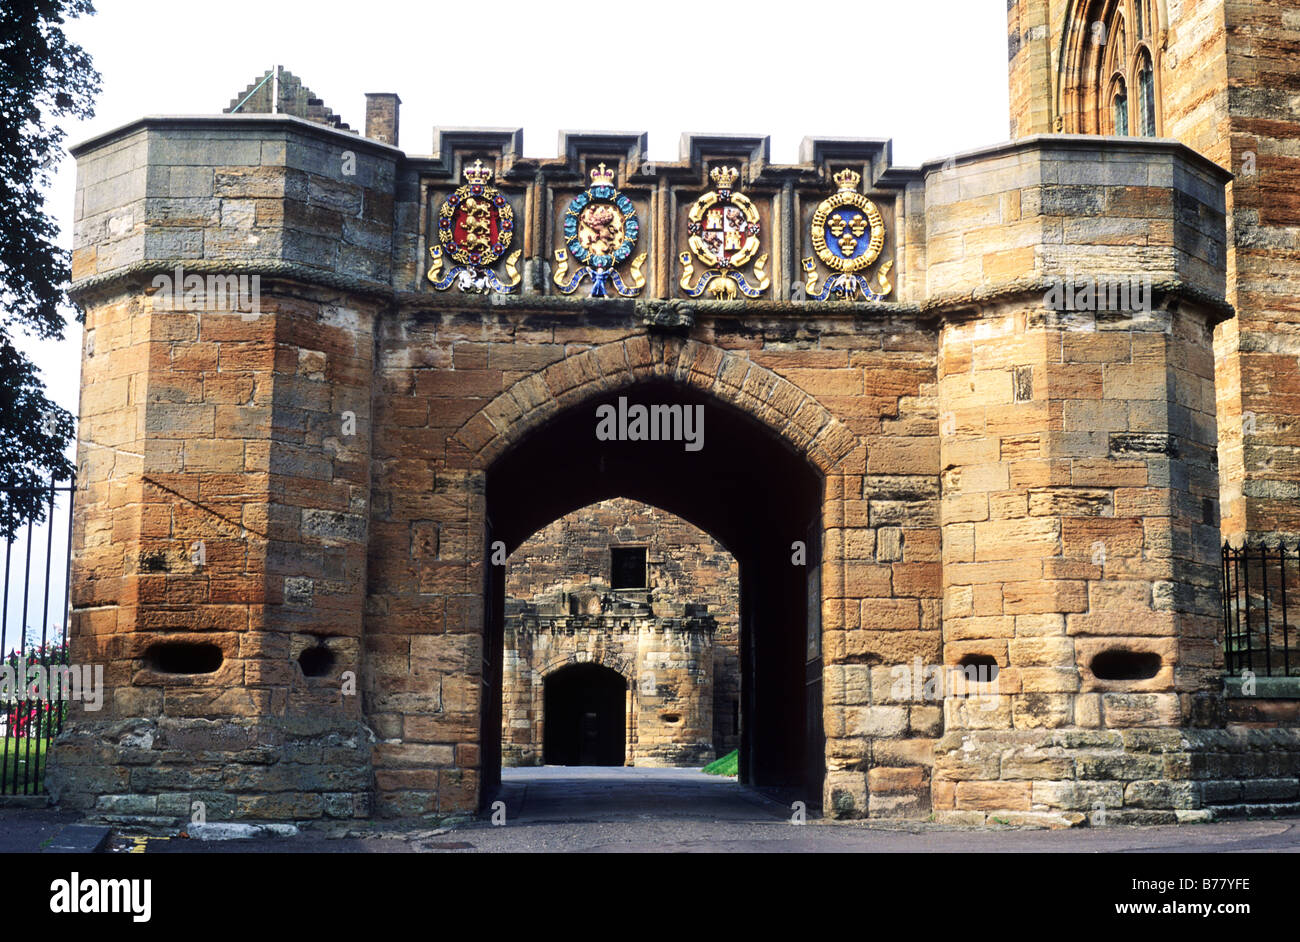 Linlithgow Palace 15th century Gateway Scotland UK medieval architecture Stock Photo